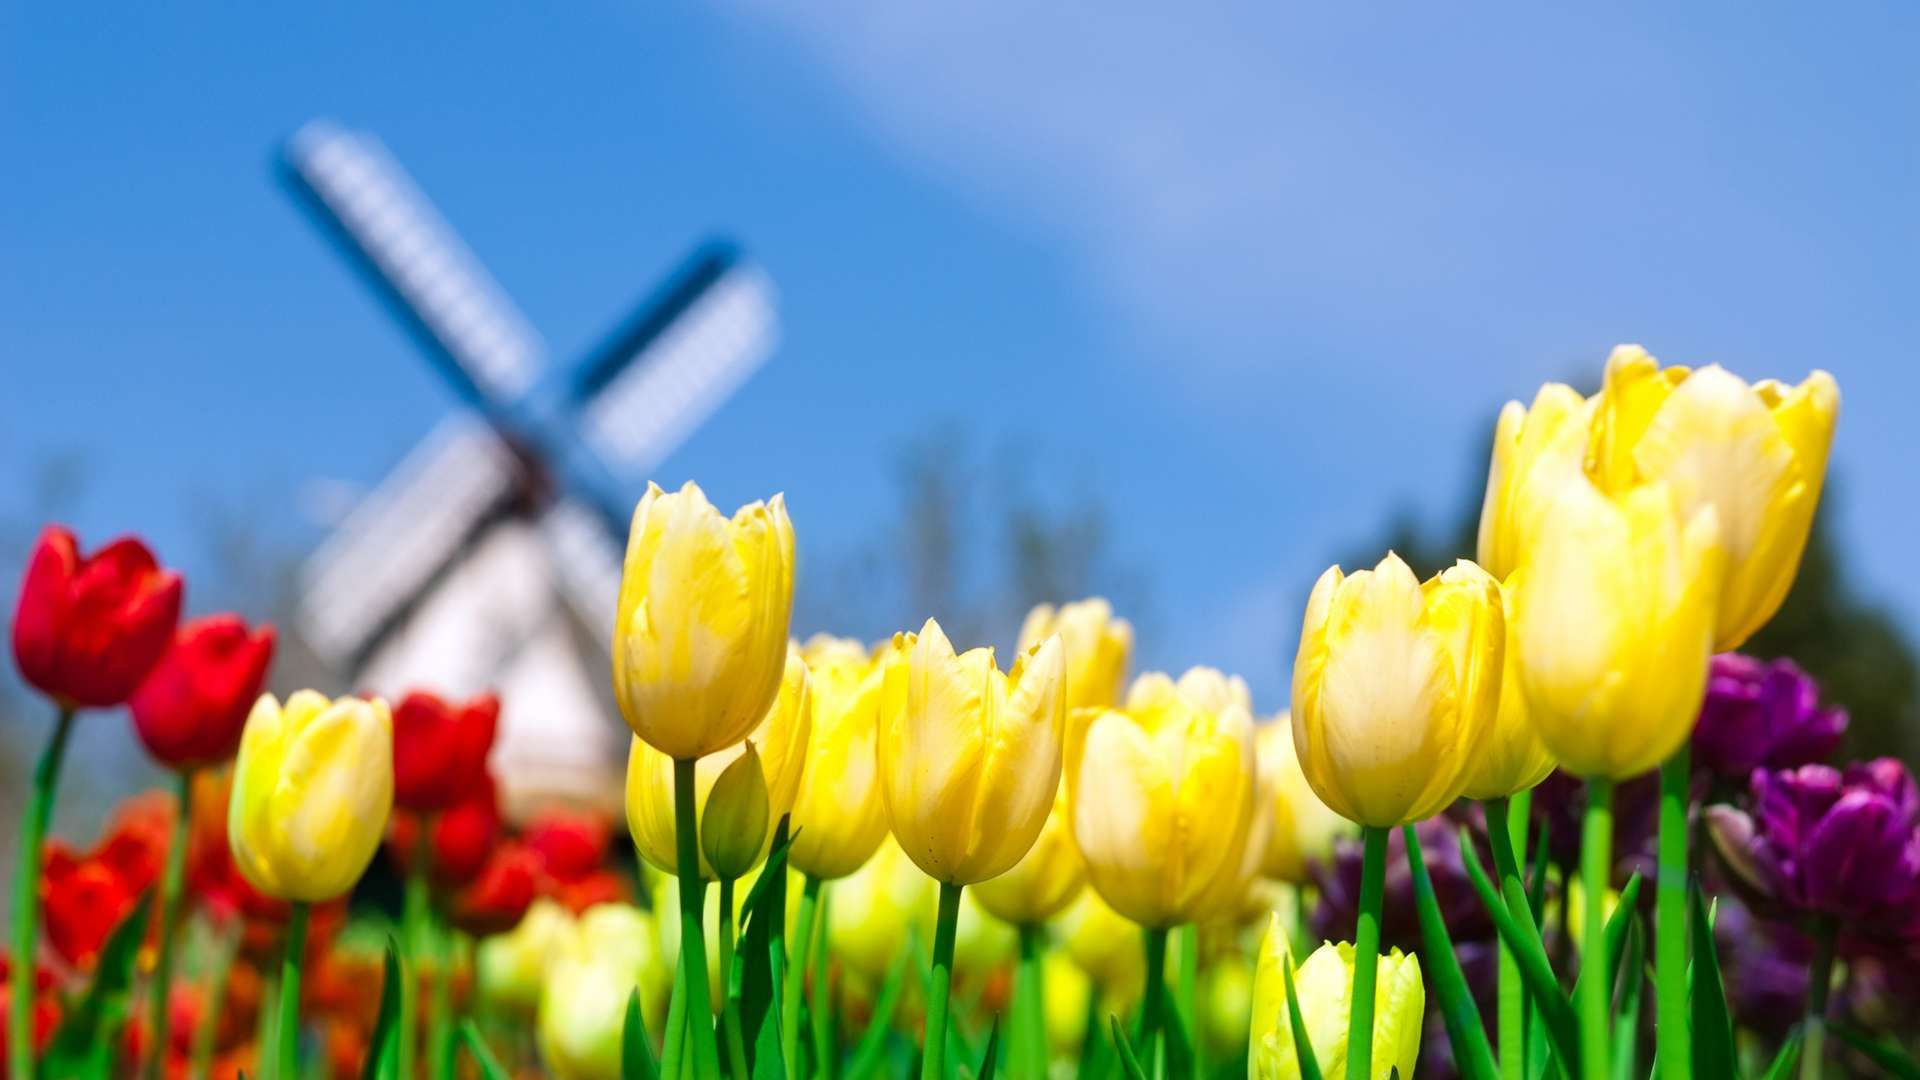 Tulips And Windmill Hd Wallpaper Spring Flowers Wallpaper Spring Flowers Background Flowers Nature